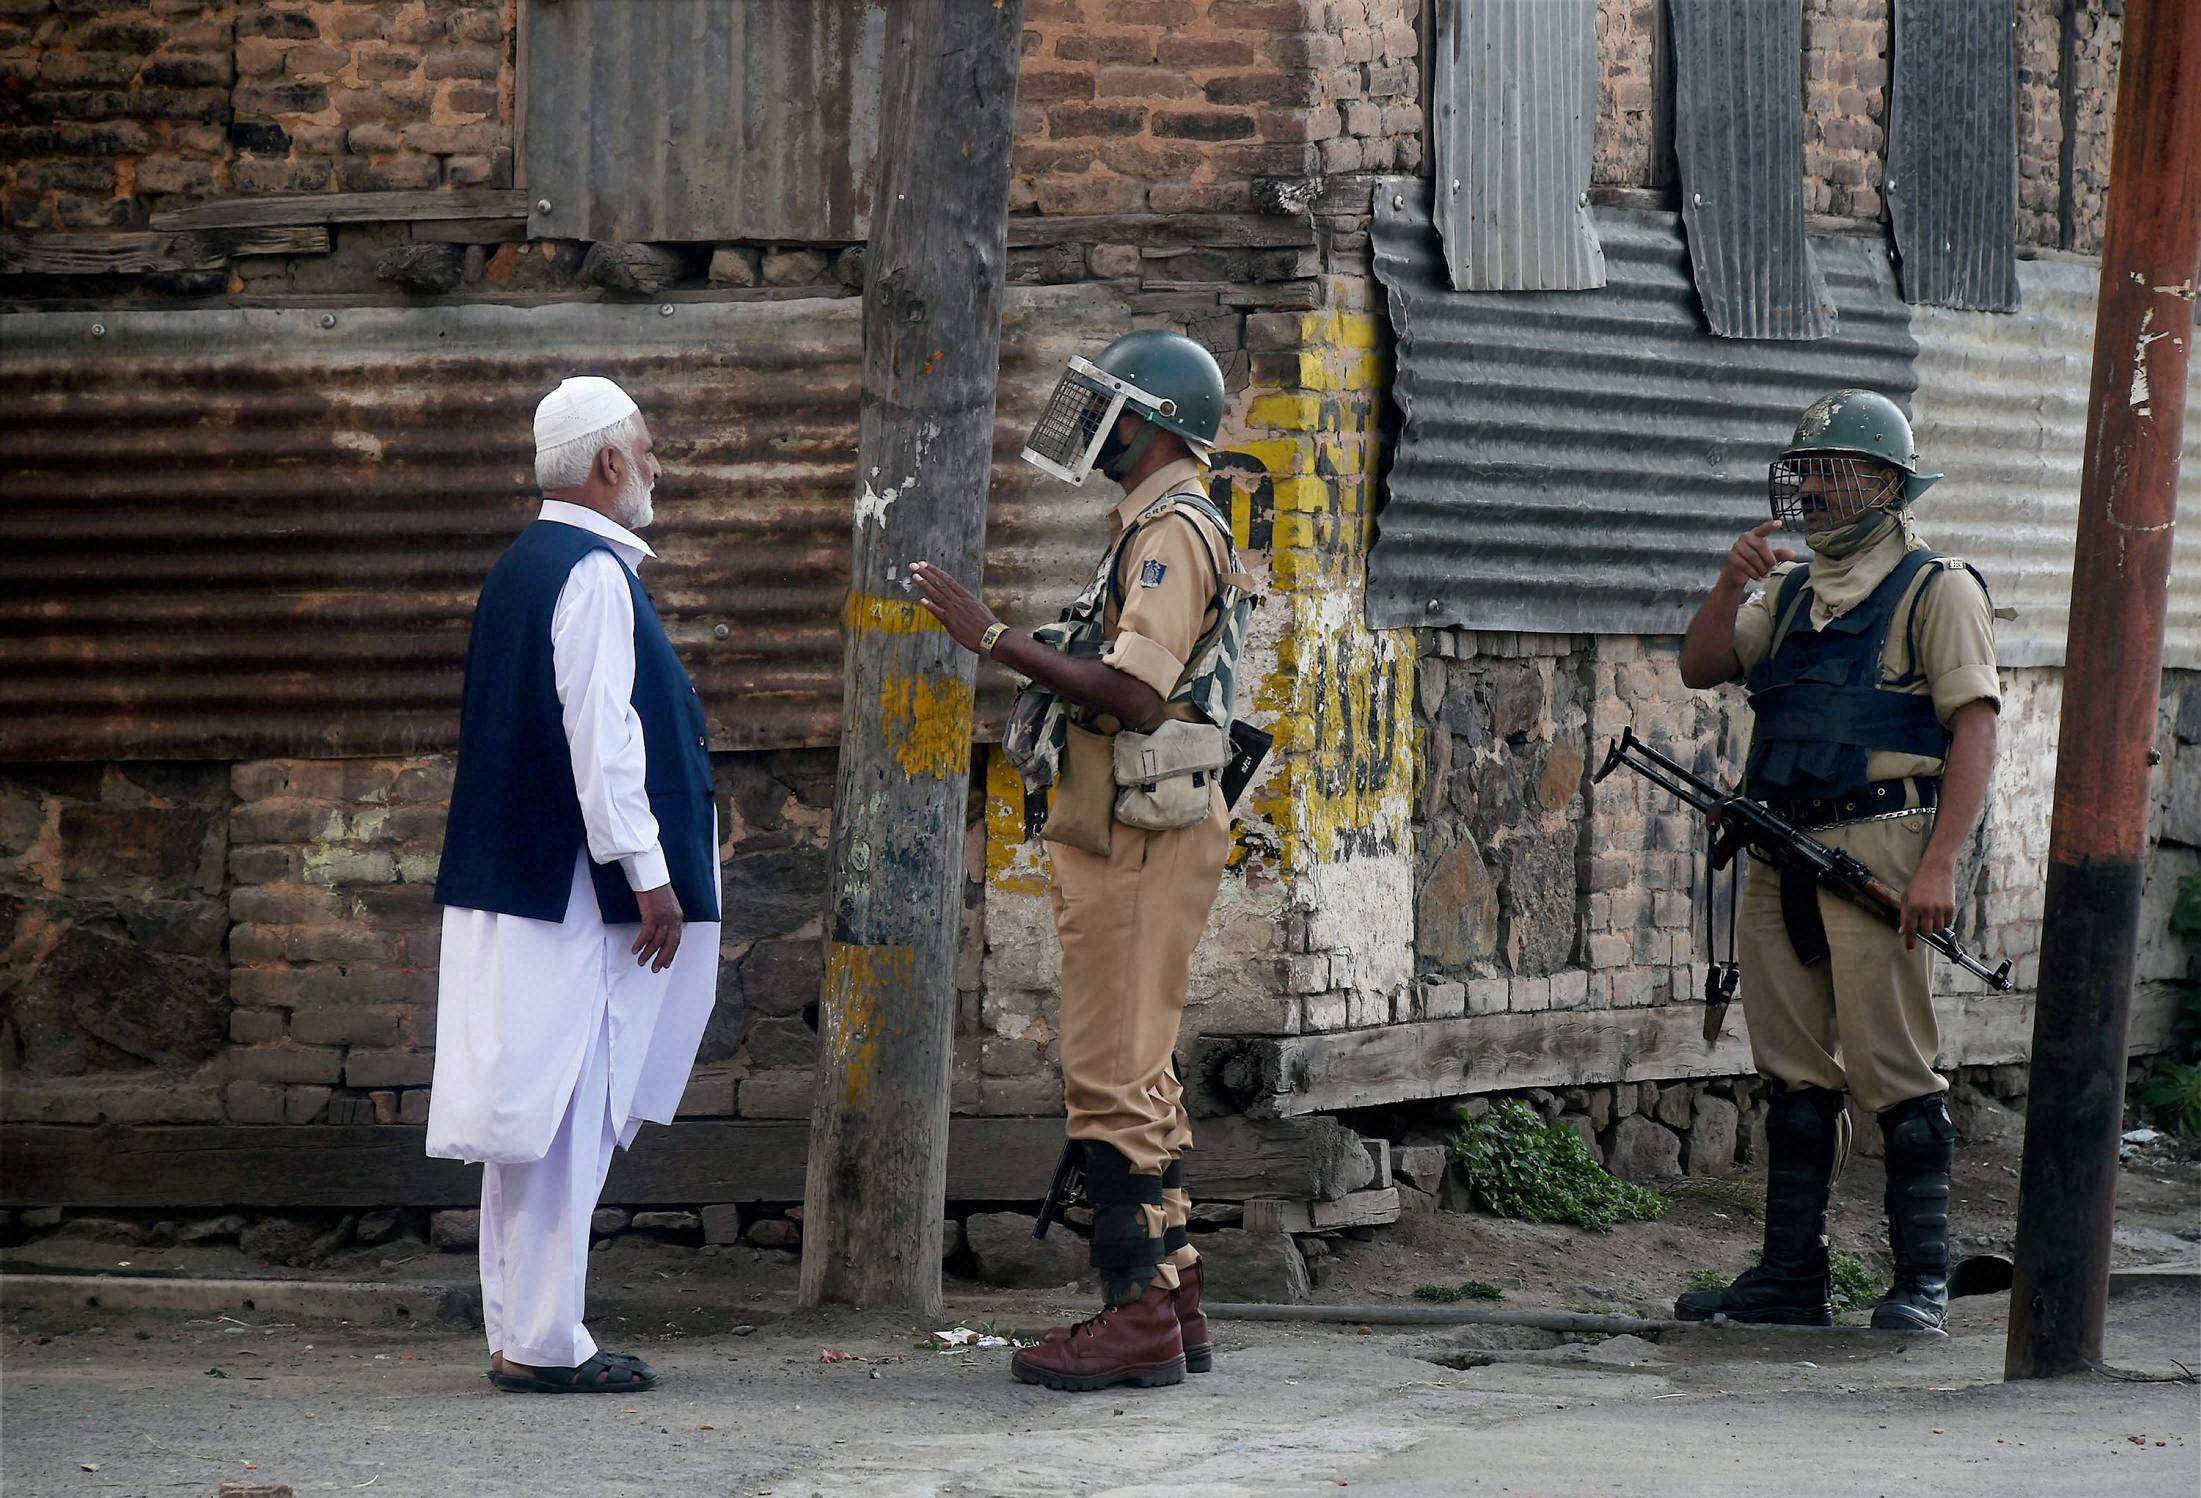 Even One Civilian Death in Kashmir is Too Many, Says Citizens' Group